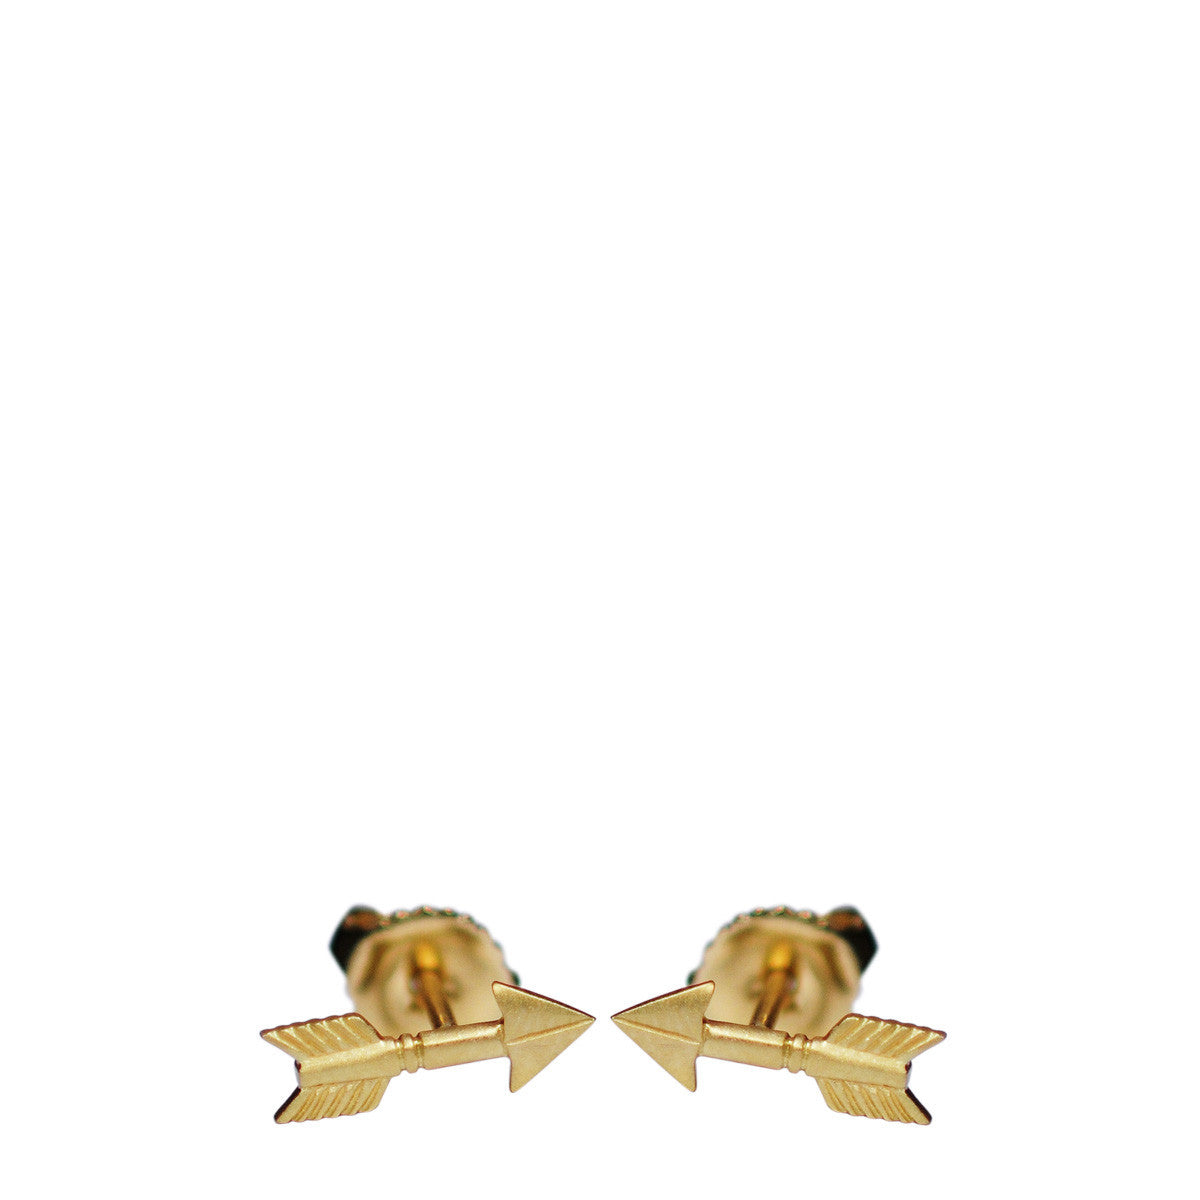 18K Gold Arrow Stud Earrings